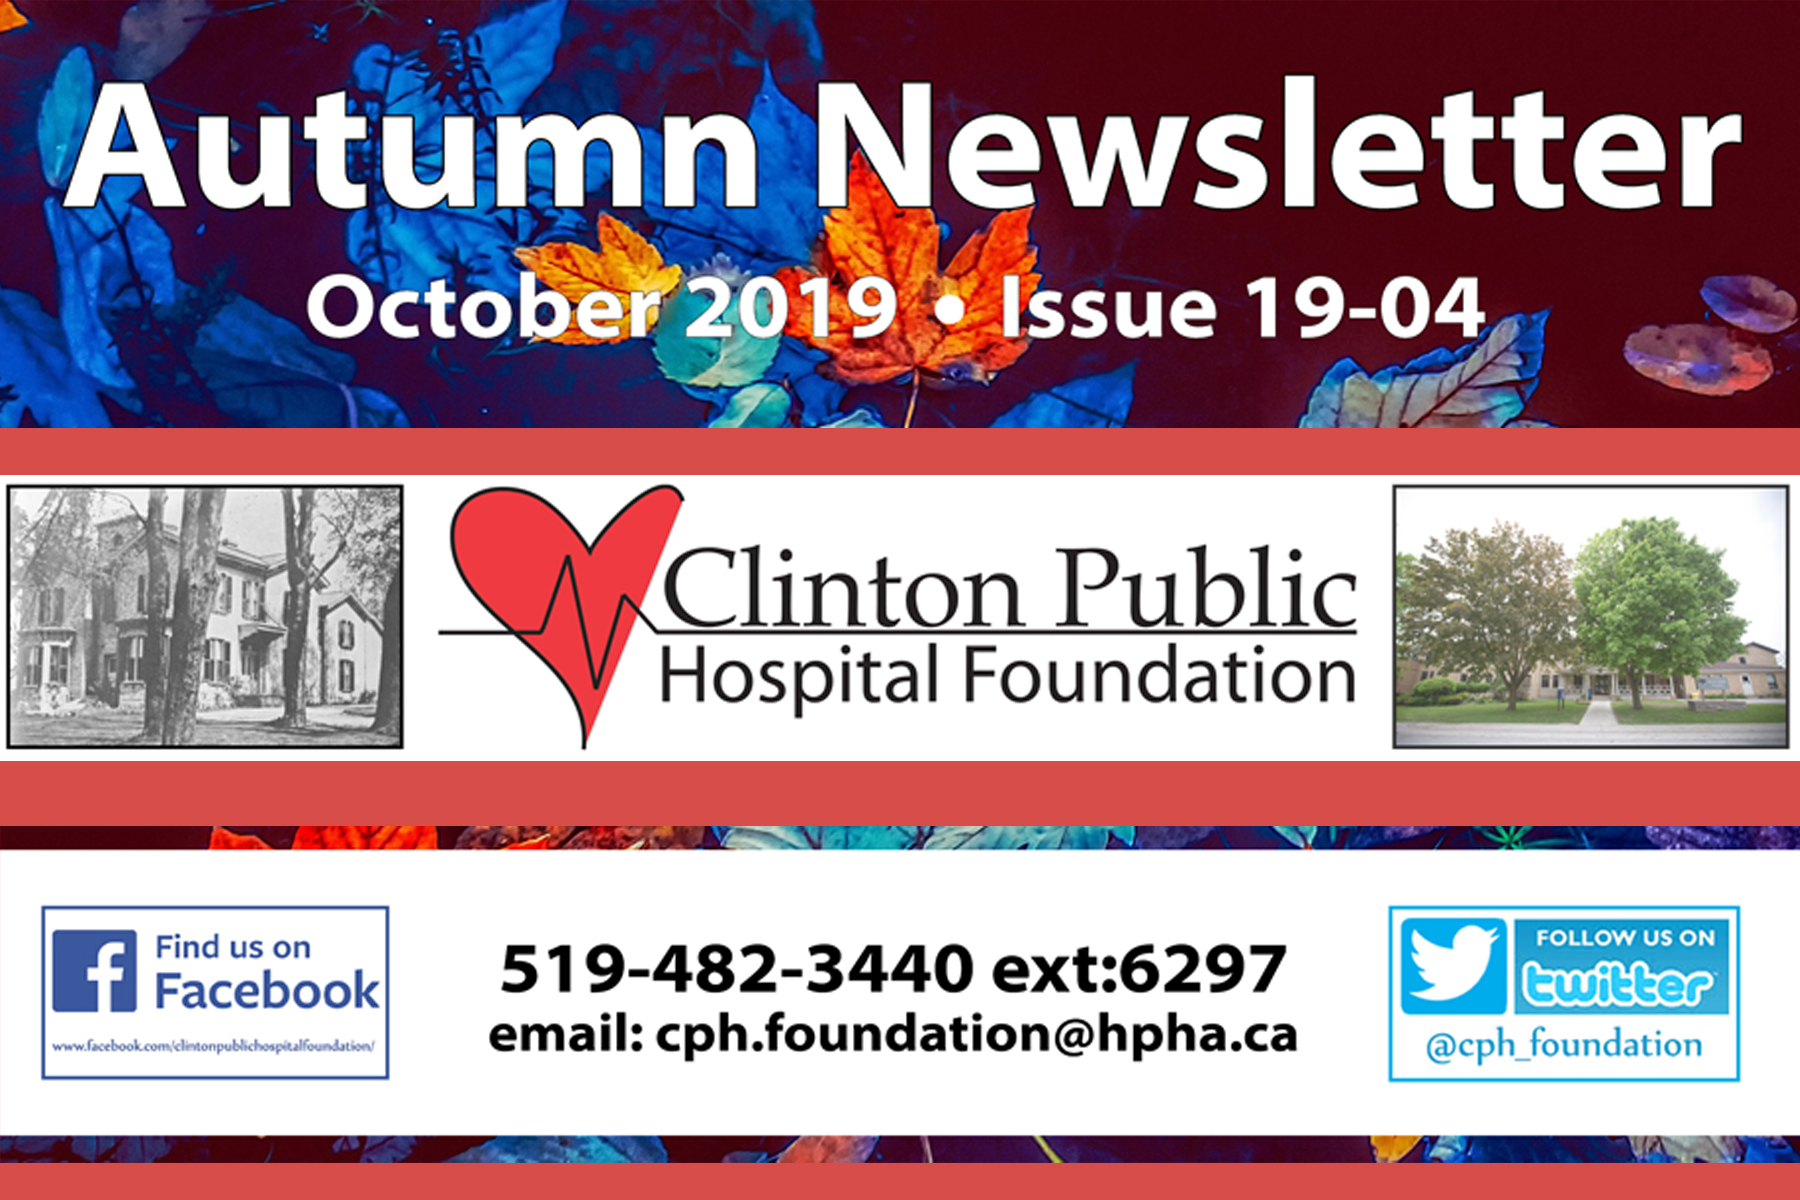 CPHF Autumn Newsletter (19-04)